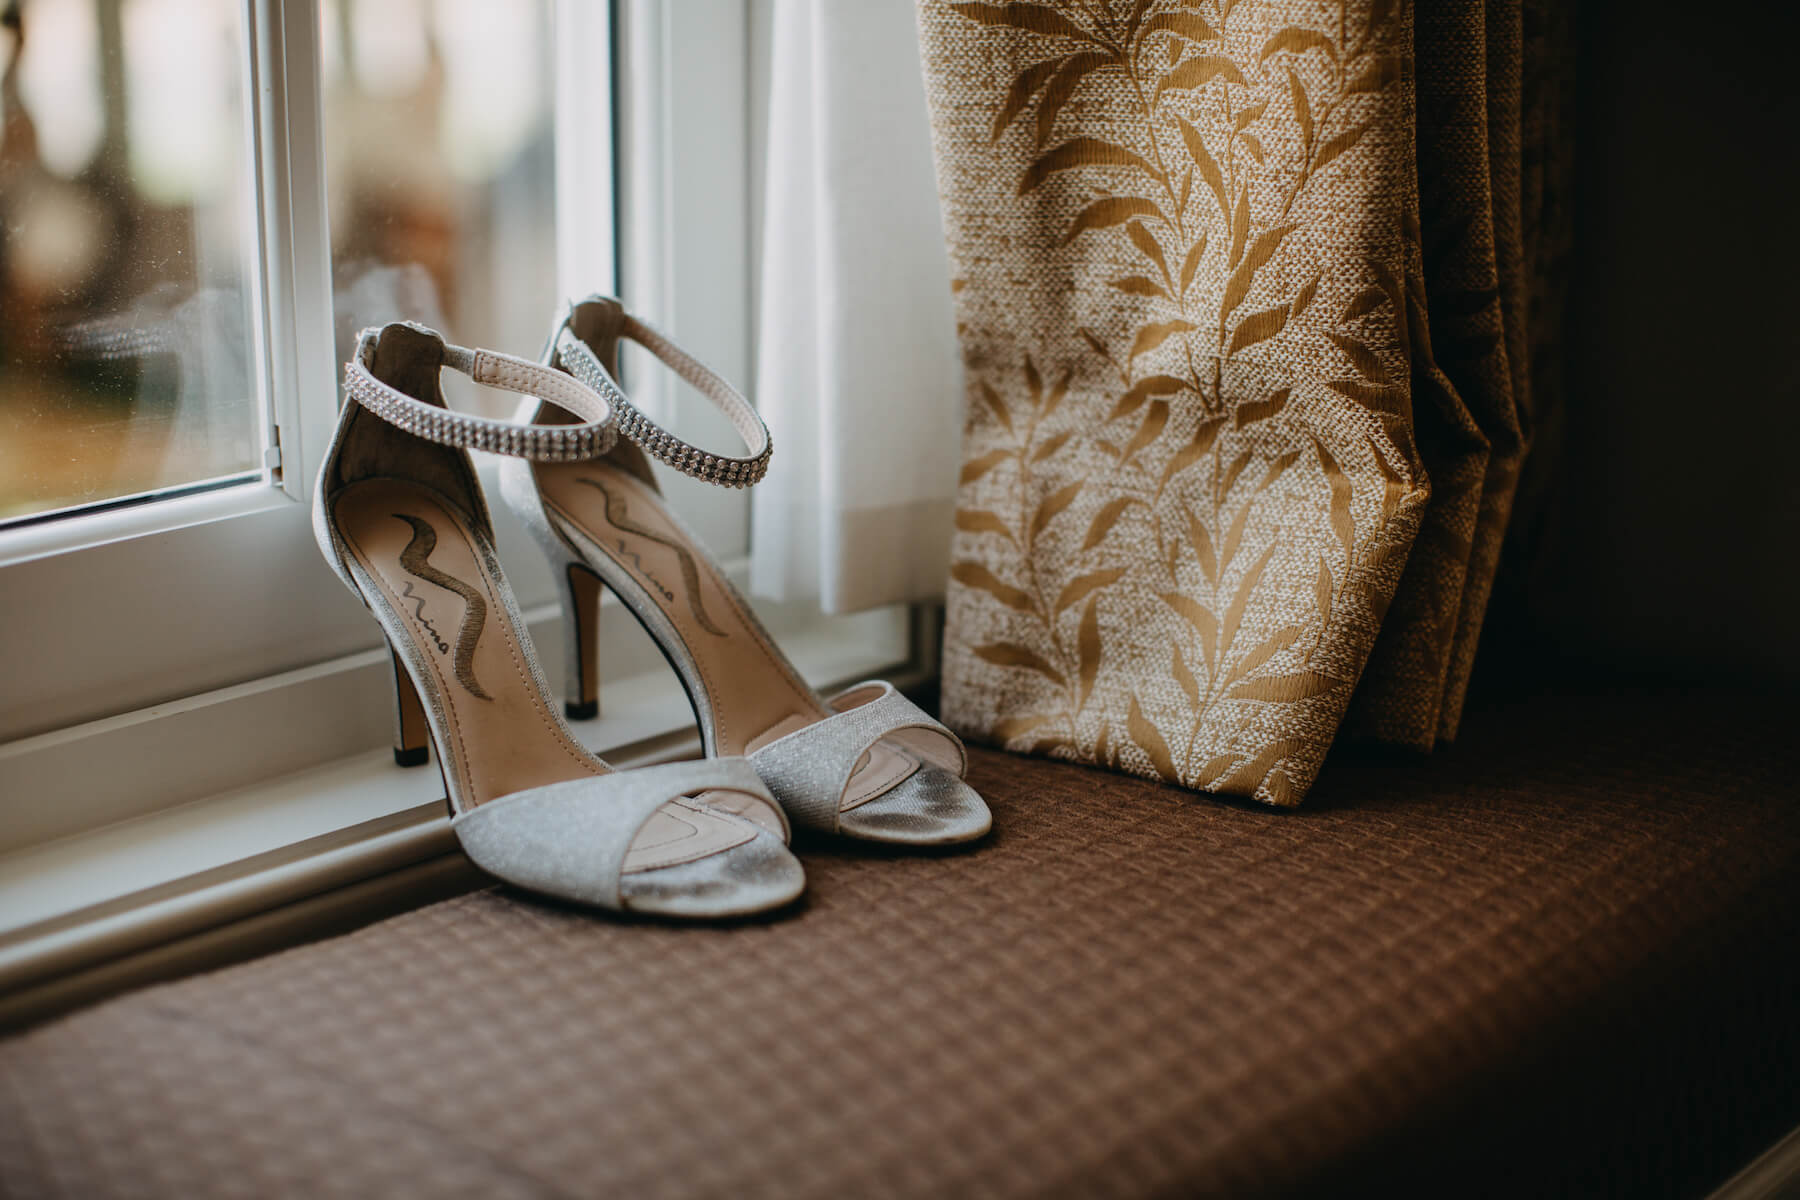 veronica-barnes-photography-engle-olson-wedding- 3.jpg